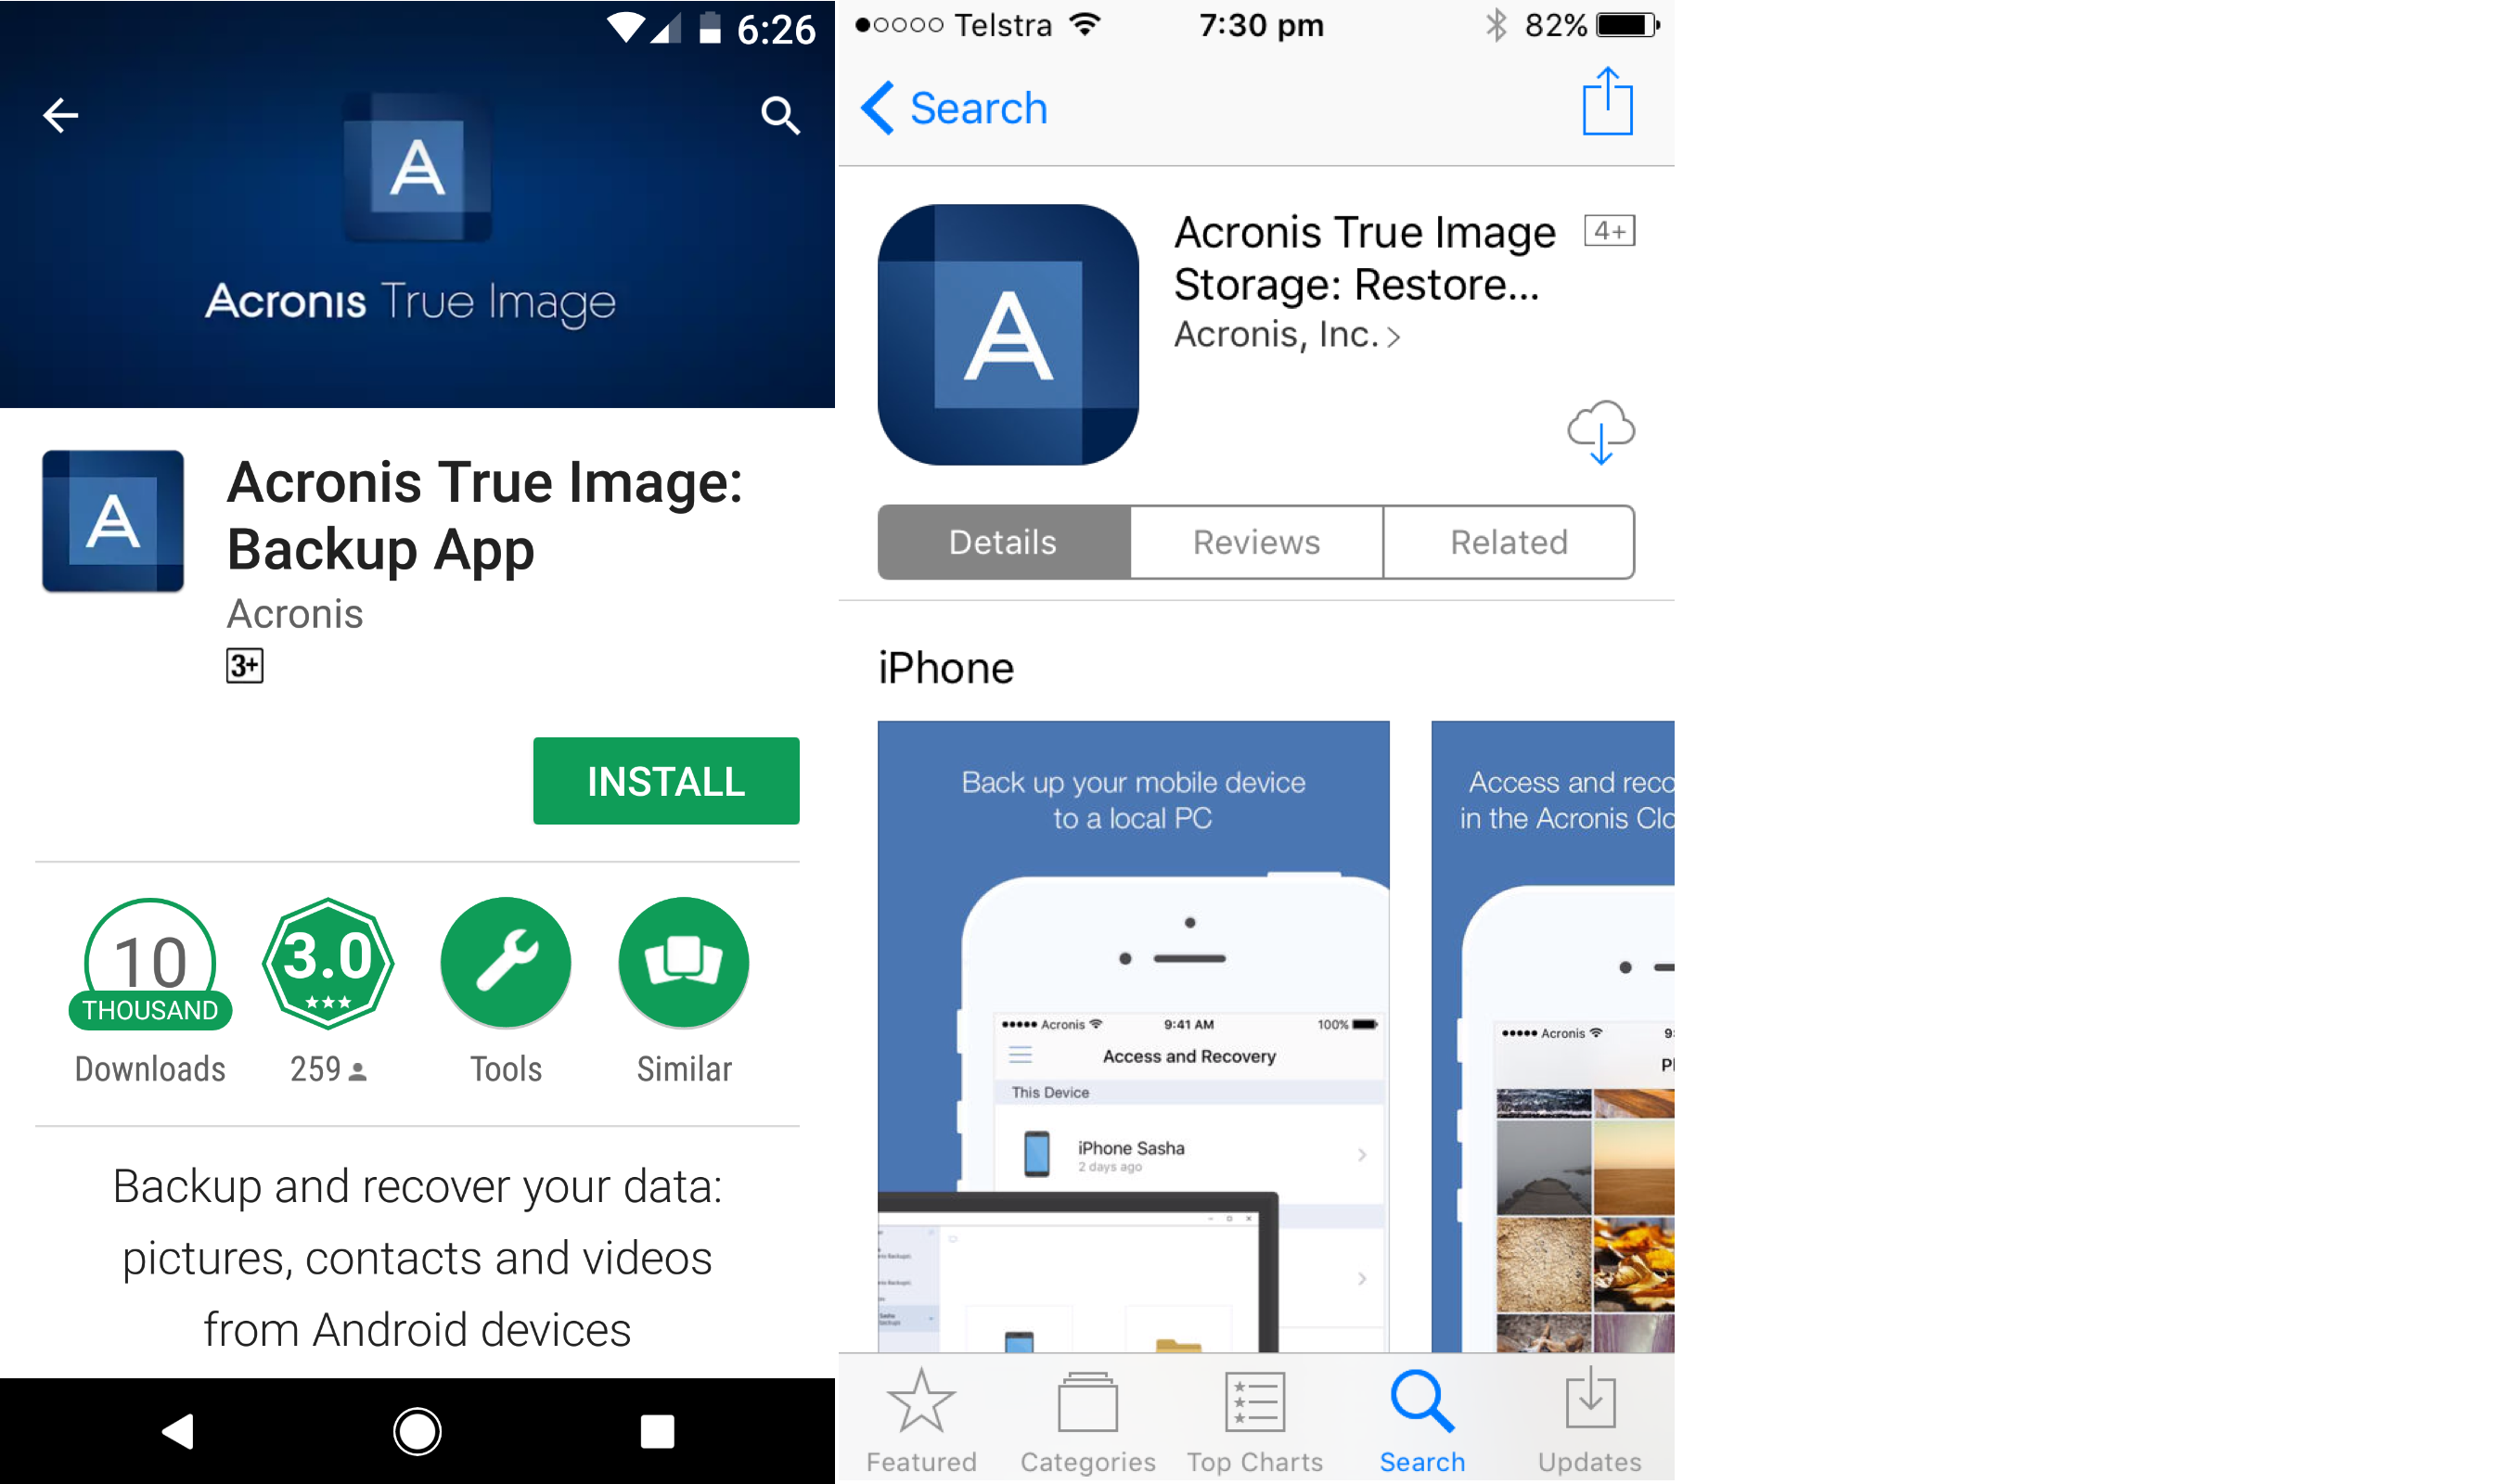 Download Acronis True Image app Android and iPhone